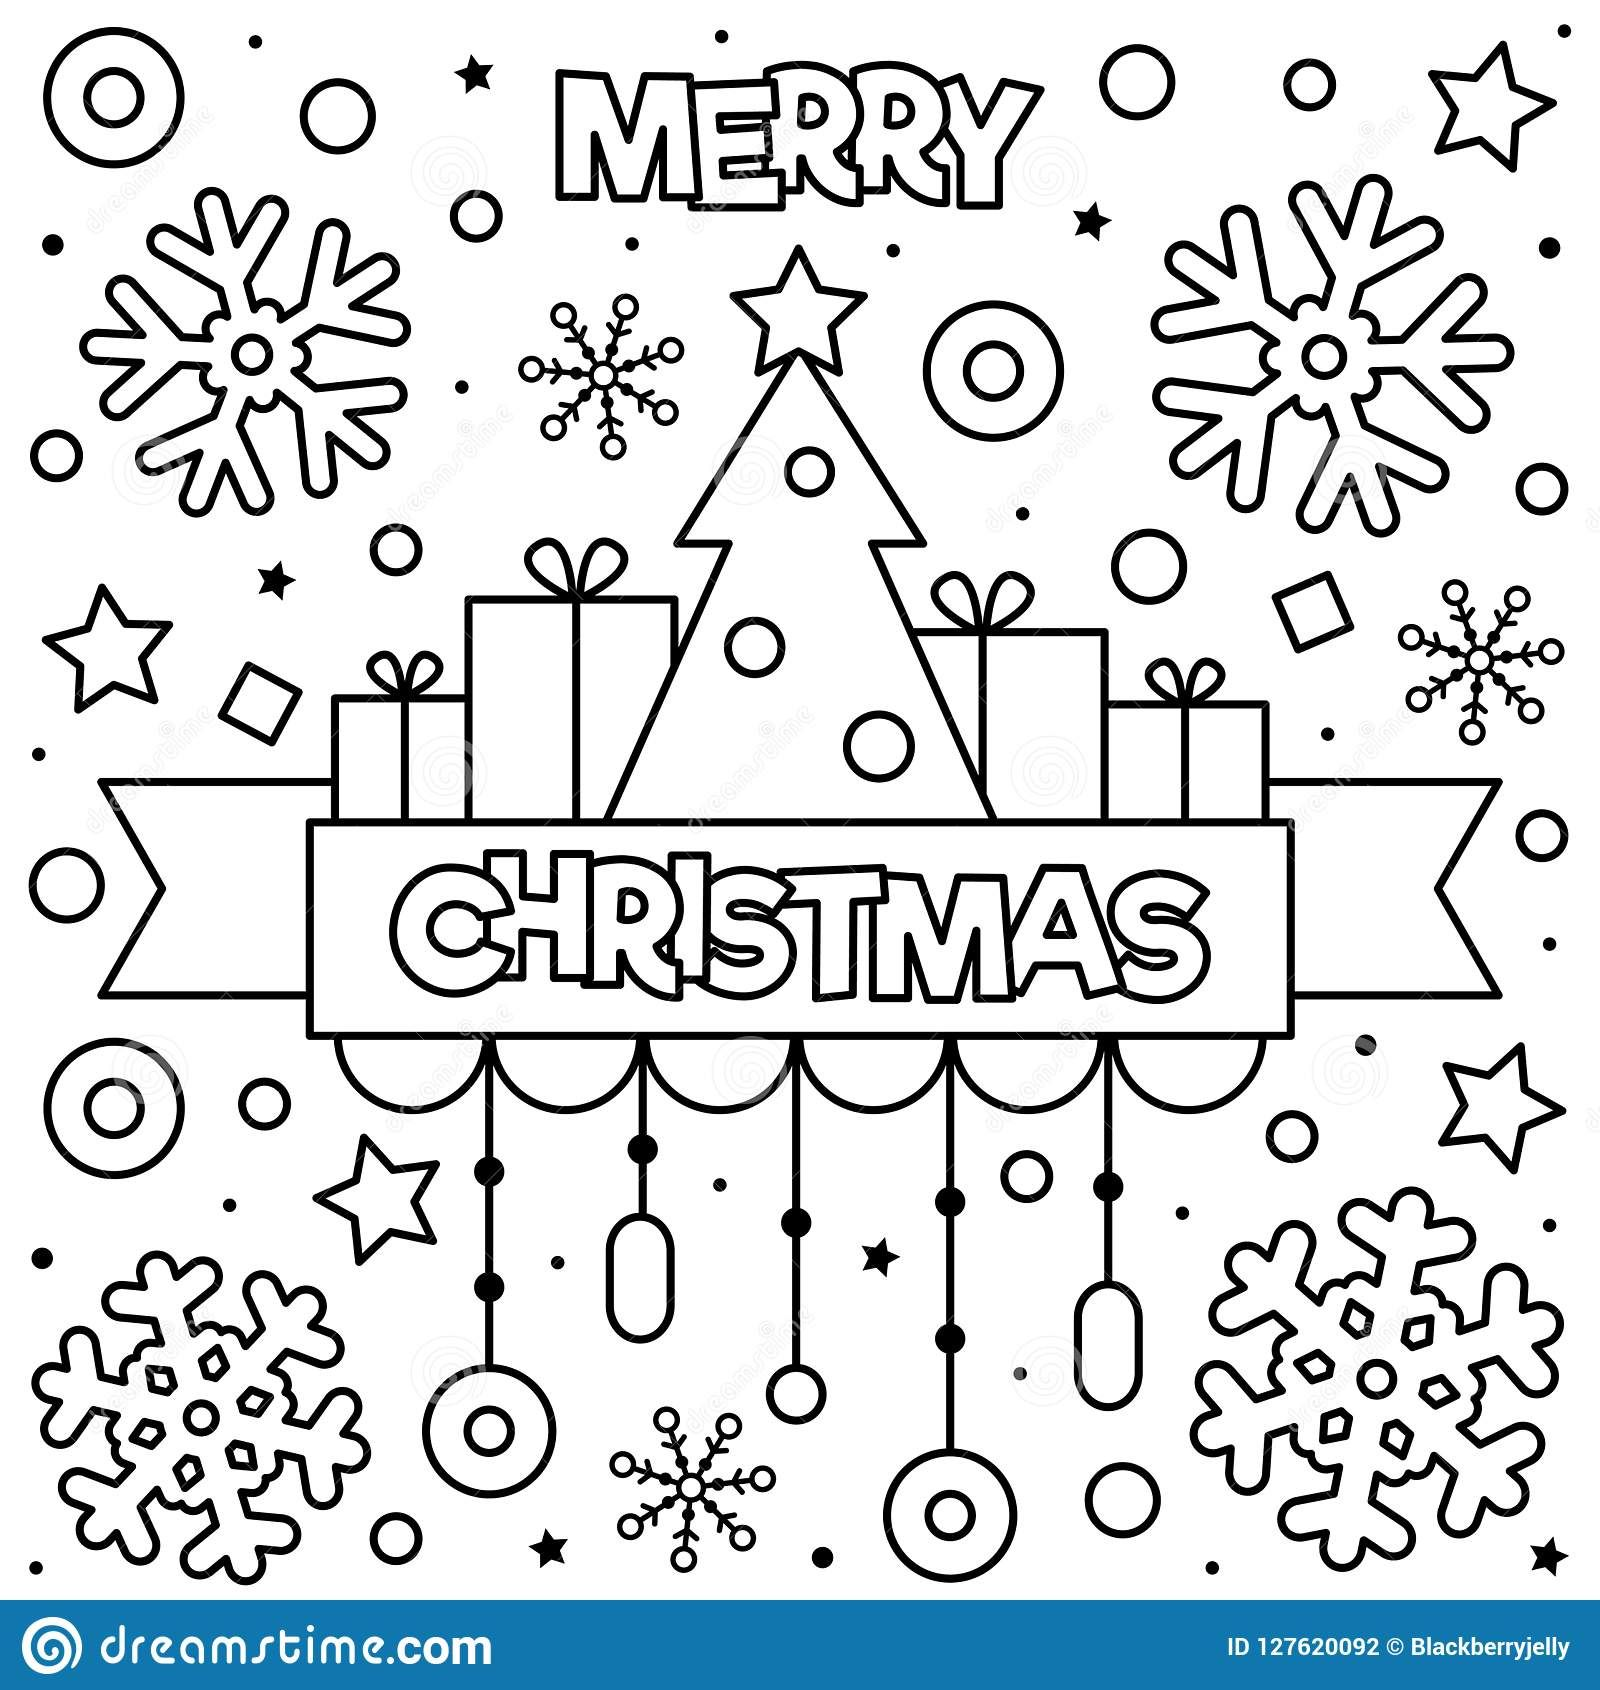 New Coloring Pages Merry Christmas For You With Images